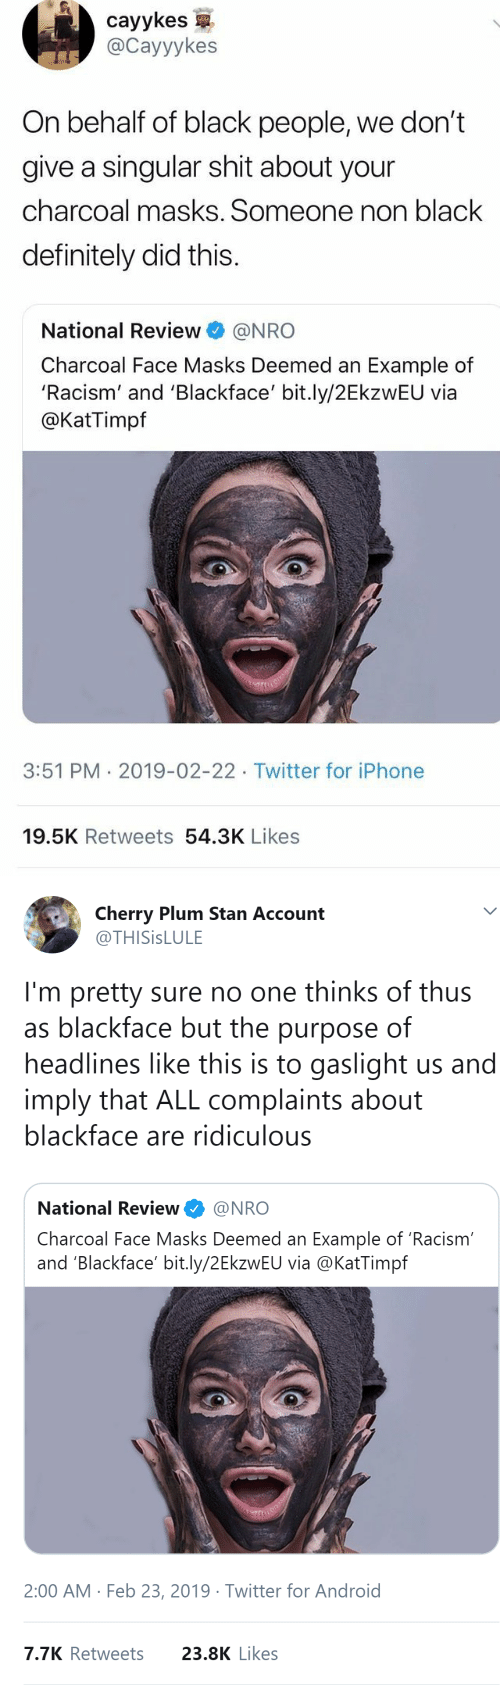 masks: cayykes  @Cayyykes  On behalf of black people, we don't  give a singular shit about your  charcoal masks. Someone non black  definitely did this.  National Review@NRO  Charcoal Face Masks Deemed an Example of  'Racism' and 'Blackface' bit.ly/2EkzwEU via  @KatTimpf  3:51 PM 2019-02-22 Twitter for iPhone  19.5K Retweets 54.3K Likes   Cherry Plum Stan Account  @THISİSLULE  I'm pretty sure no one thinks of thus  as blackface but the purpose of  headlines like this is to gaslight us and  imply that ALL complaints about  blackface are ridiculous  National Review@NRO  Charcoal Face Masks Deemed an Example of 'Racism  and 'Blackface' bit.ly/2EkzwEU via @KatTimpf  2:00 AM Feb 23, 2019 Twitter for Android  7.7K Retweets  23.8K Likes